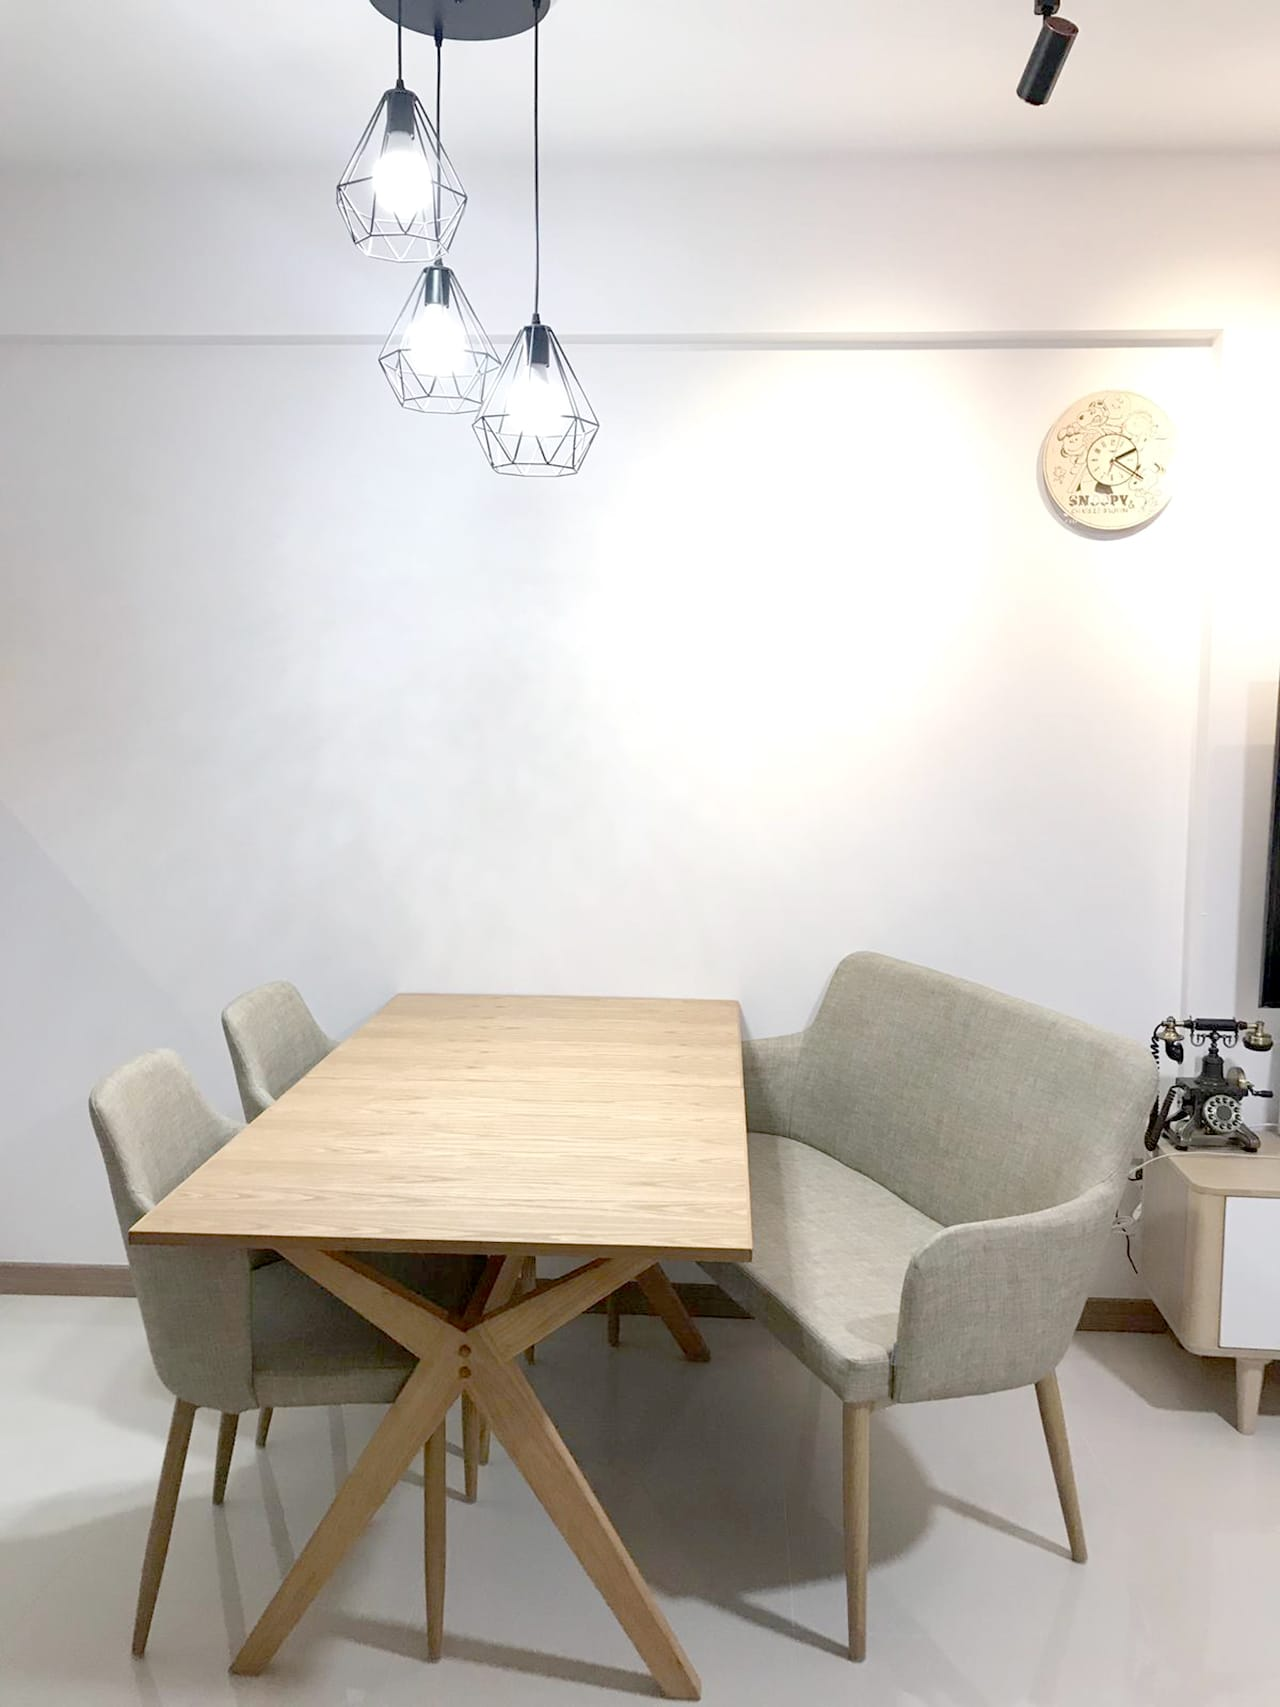 Bukit Batok West - HDB | Product Seen: [Myron Extendable Dining Table – W1500/1900, Debbie Dining Bench & Corine Arm chair]